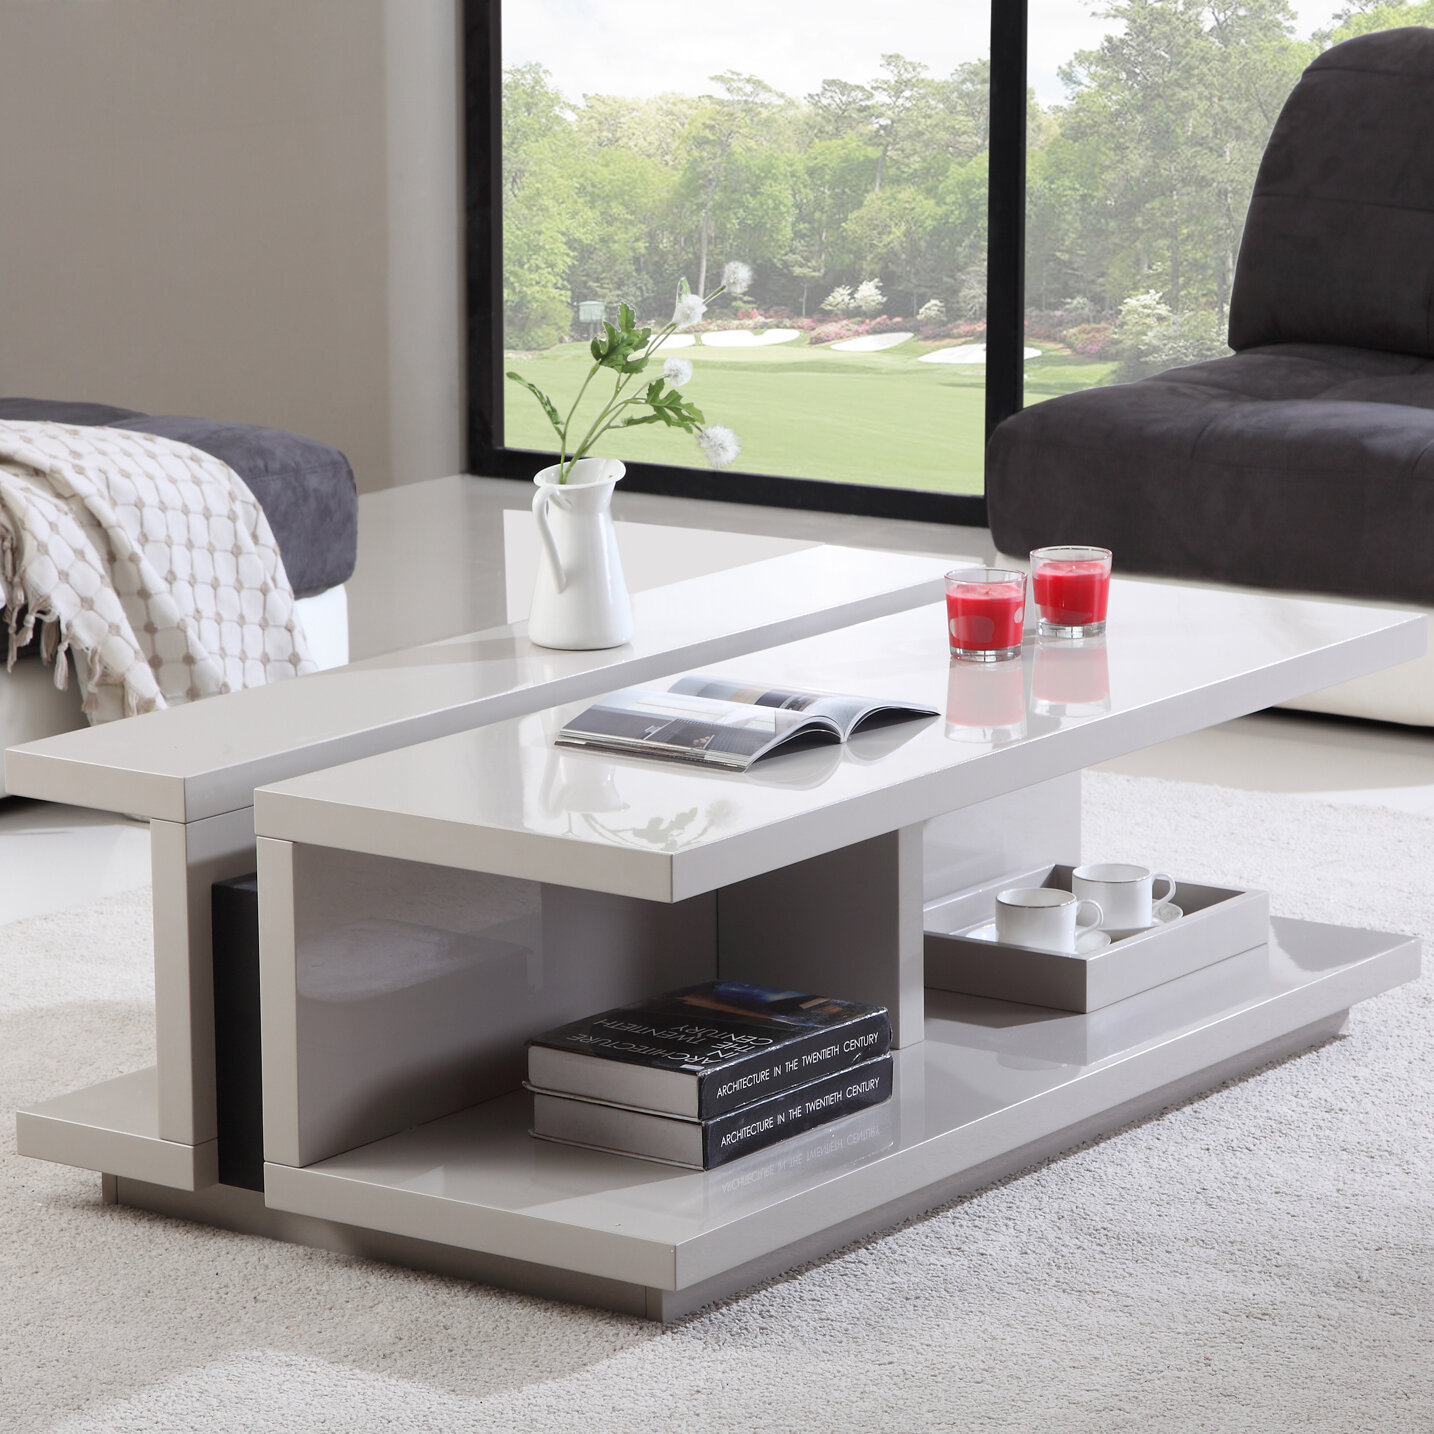 Merveilleux B Modern Dj Coffee Table | Wayfair